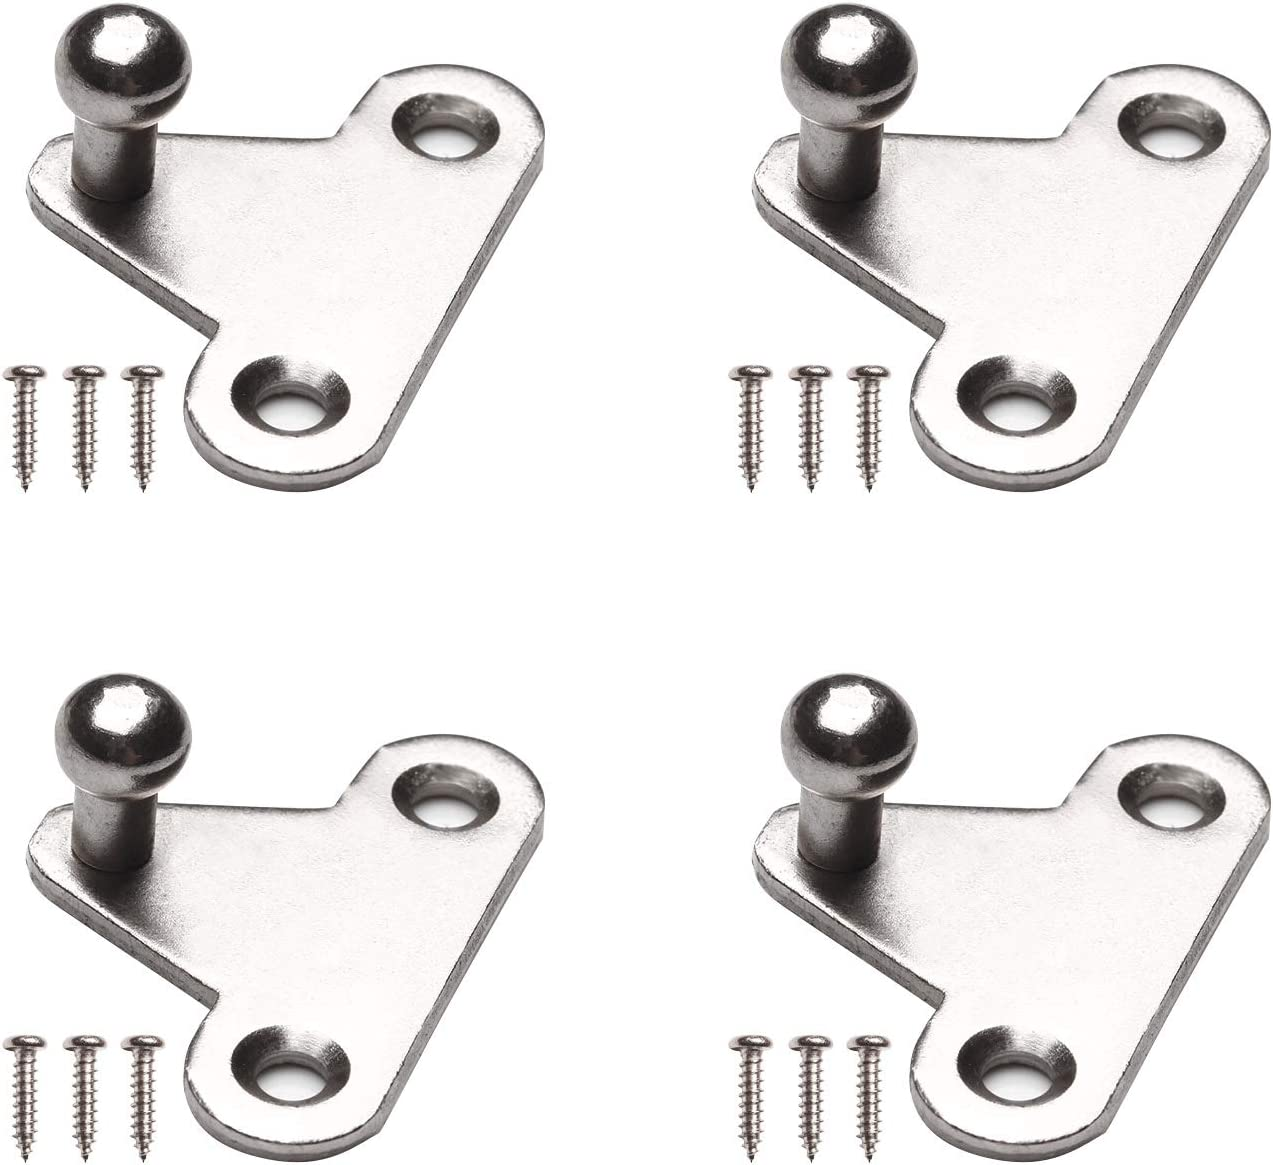 Beneges 4 Pcs 10mm Ball Stud Mounting Brackets Witch Screws Universal Gas Spring Lift Support Strut